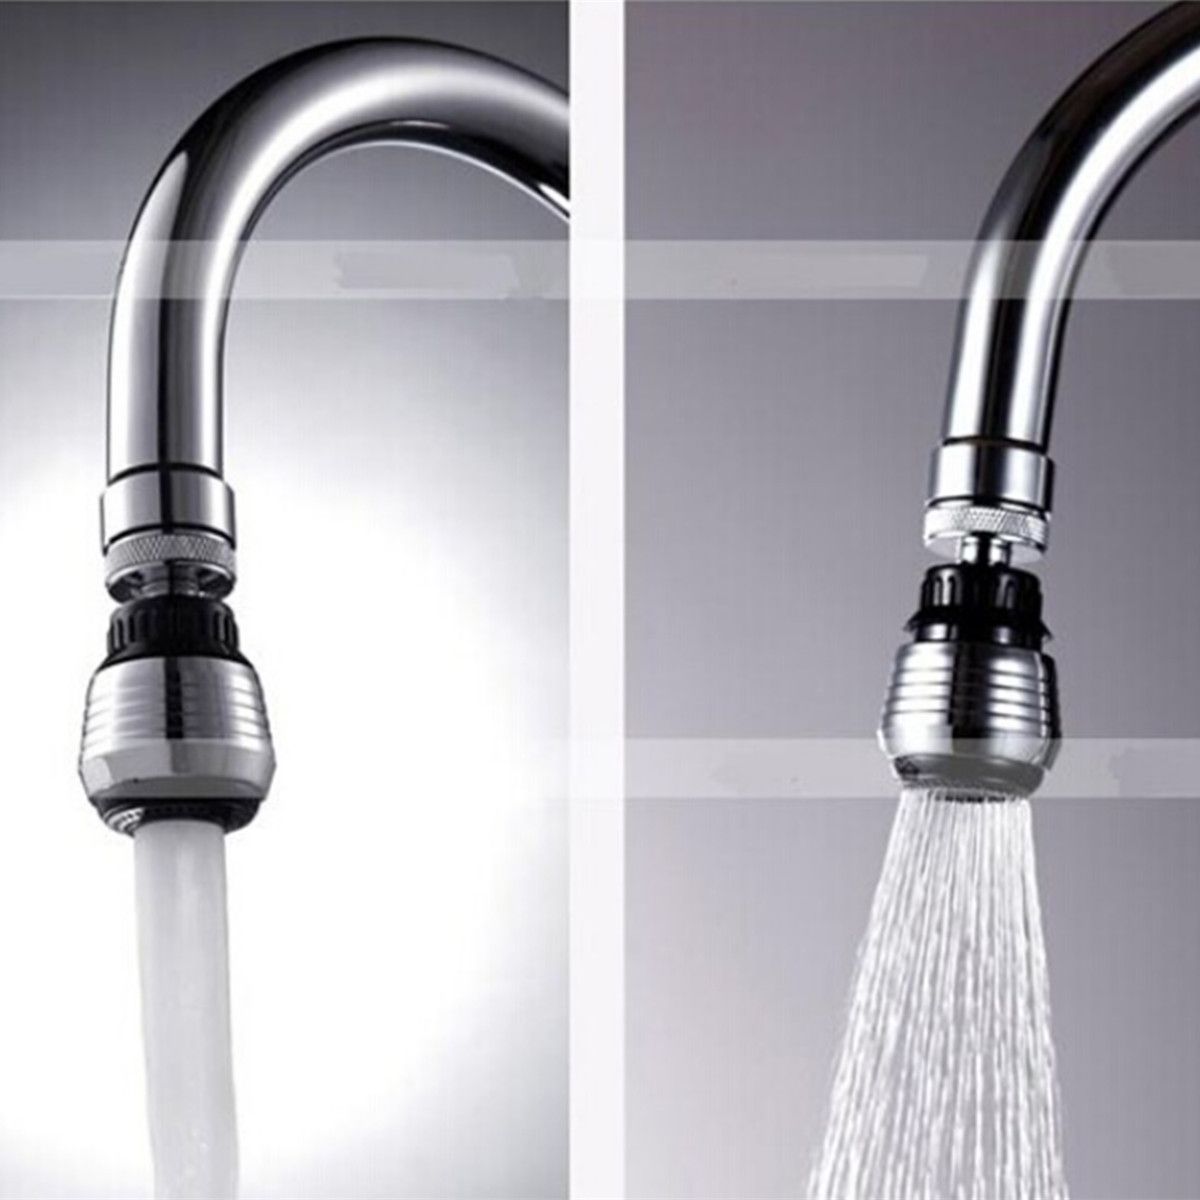 Water Saving Swivel Kitchen Bathroom Faucet Tap Adapter Aerator Shower Head Filter Nozzle Connector Faucet Bathroom Faucets Faucet Aerators